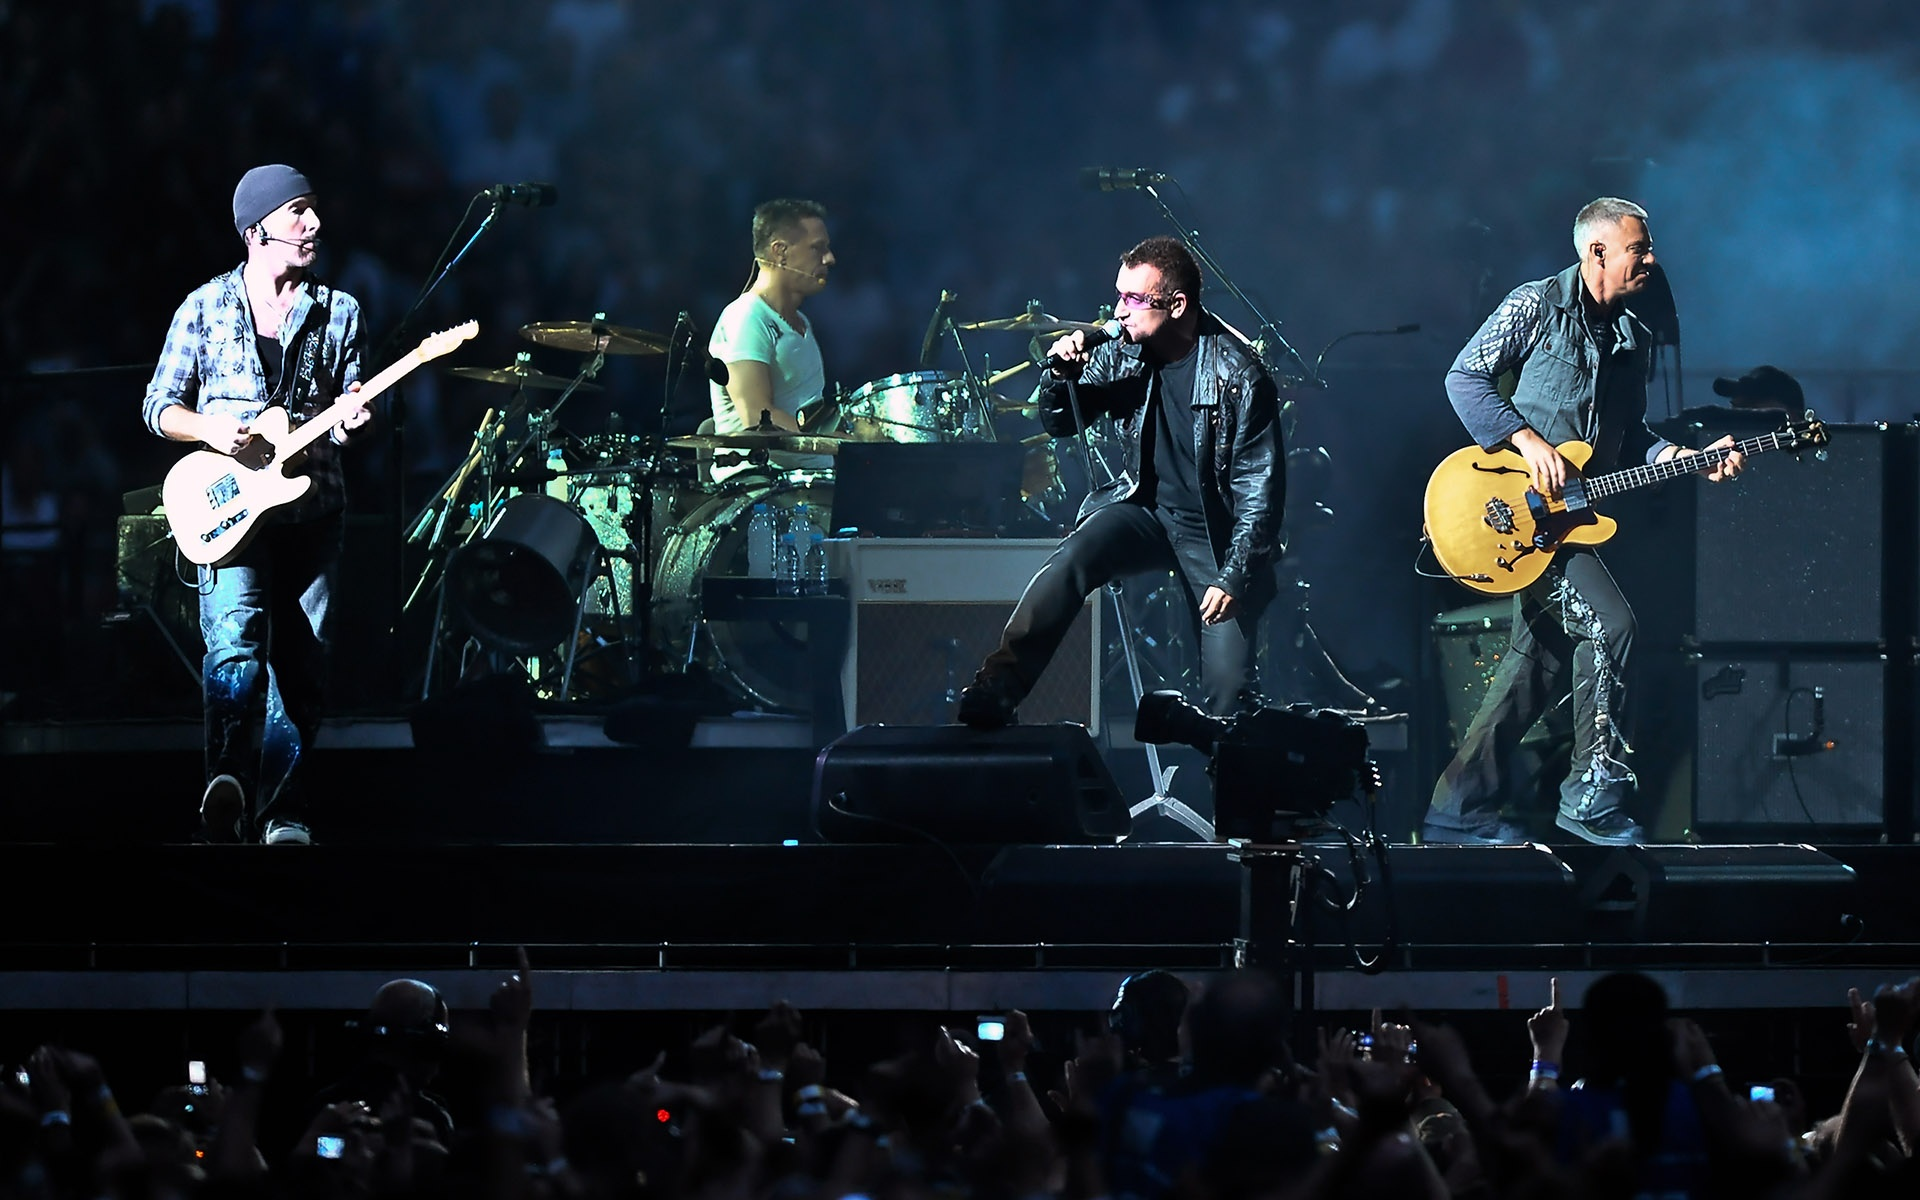 1920x1200 U2 Concert wallpaper music and dance wallpapers 1920x1200